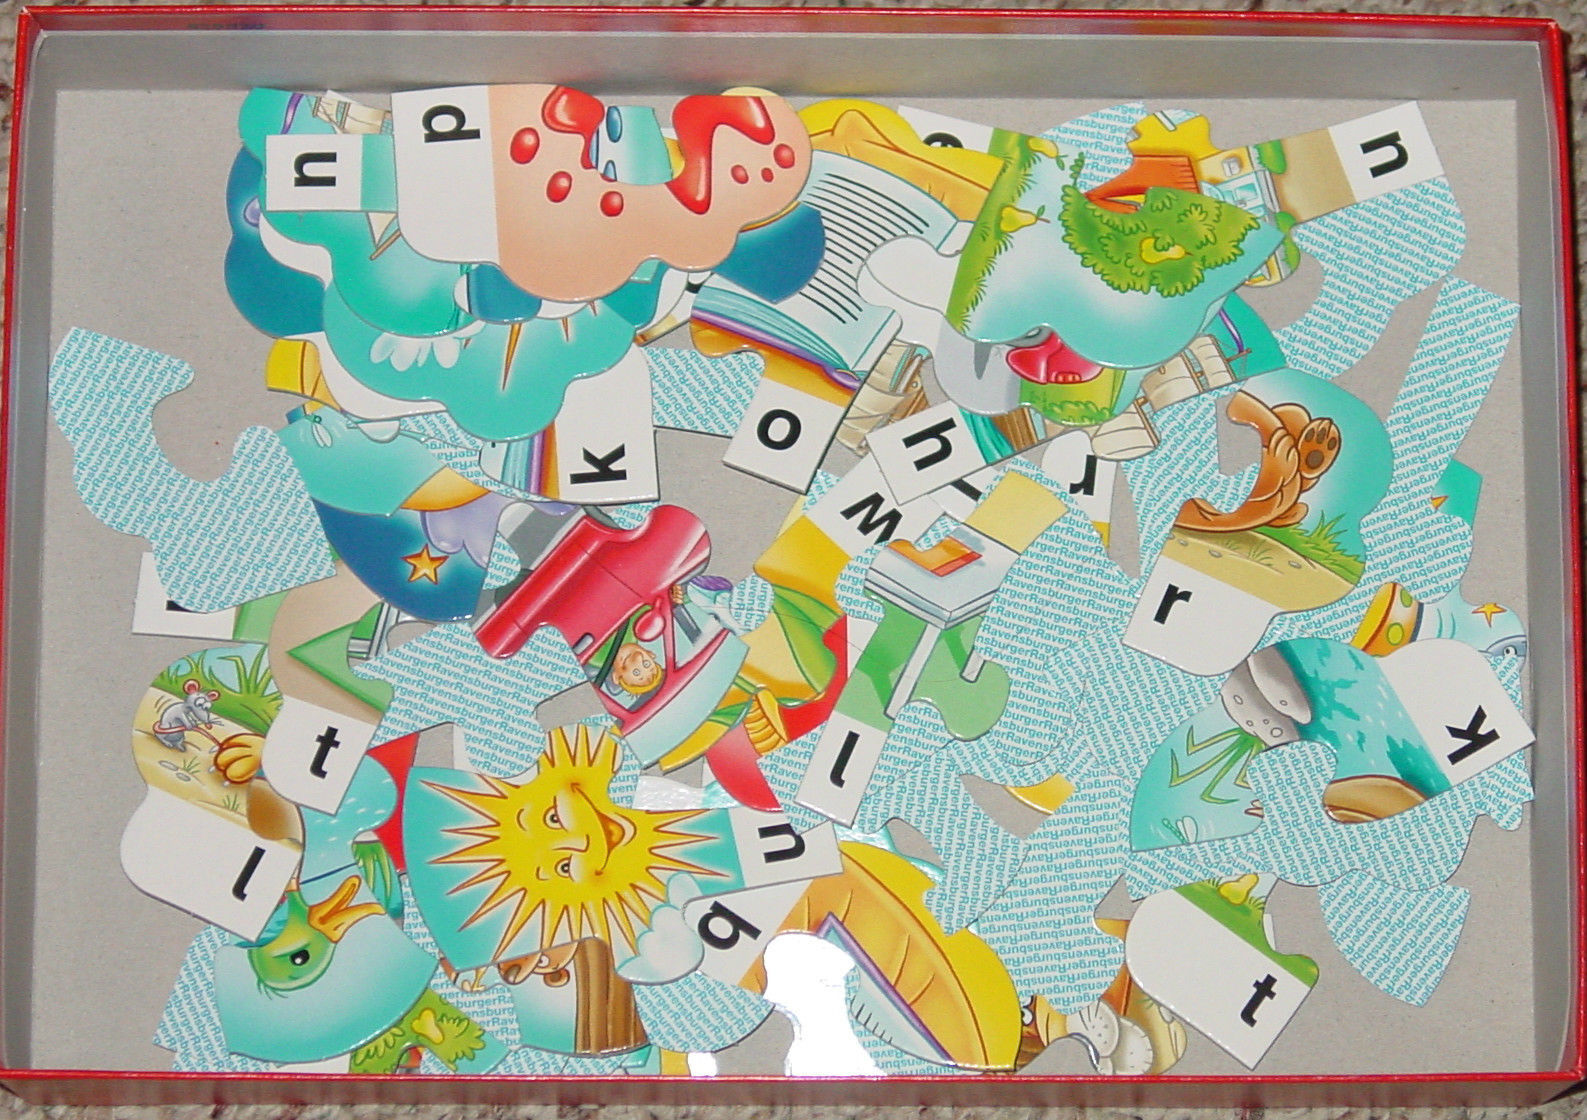 Forming First Words Ravensburger Spell It Out!